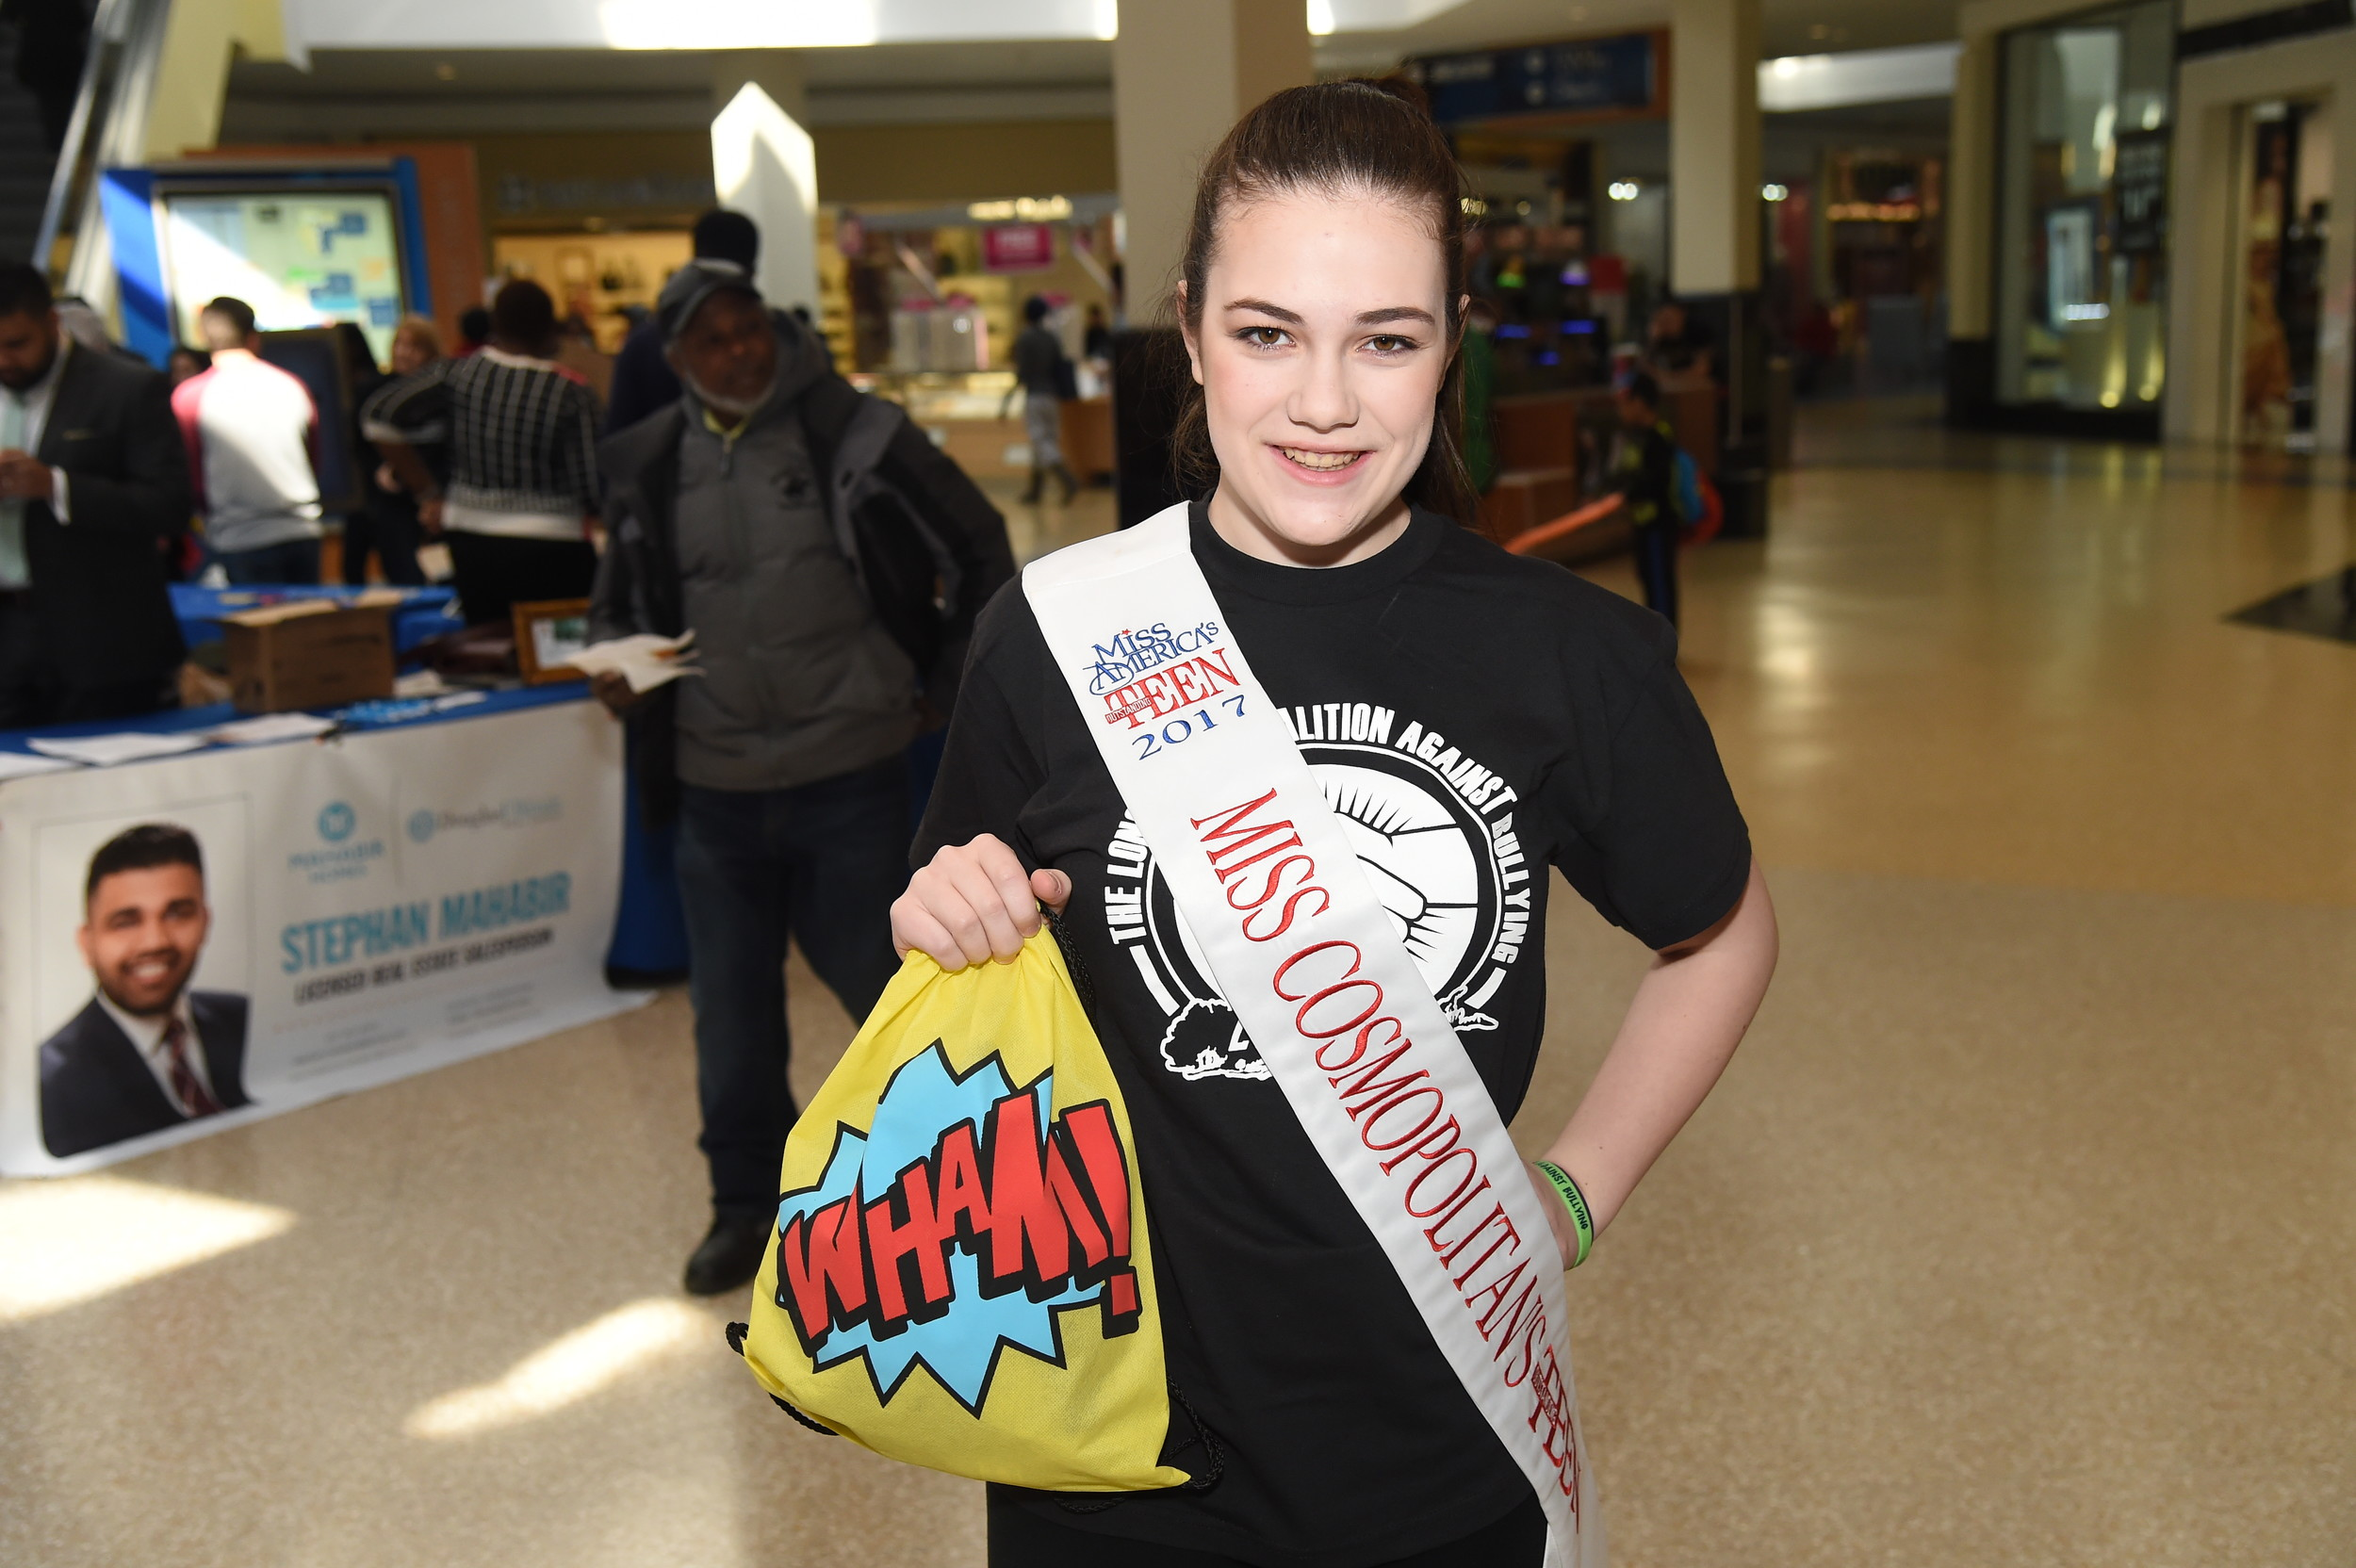 Emily Ertz, 14, of Oceanside, a student at Dominican Academy in New York City, made the trip to Green Acres Mall on March 5 to discourage bullying.